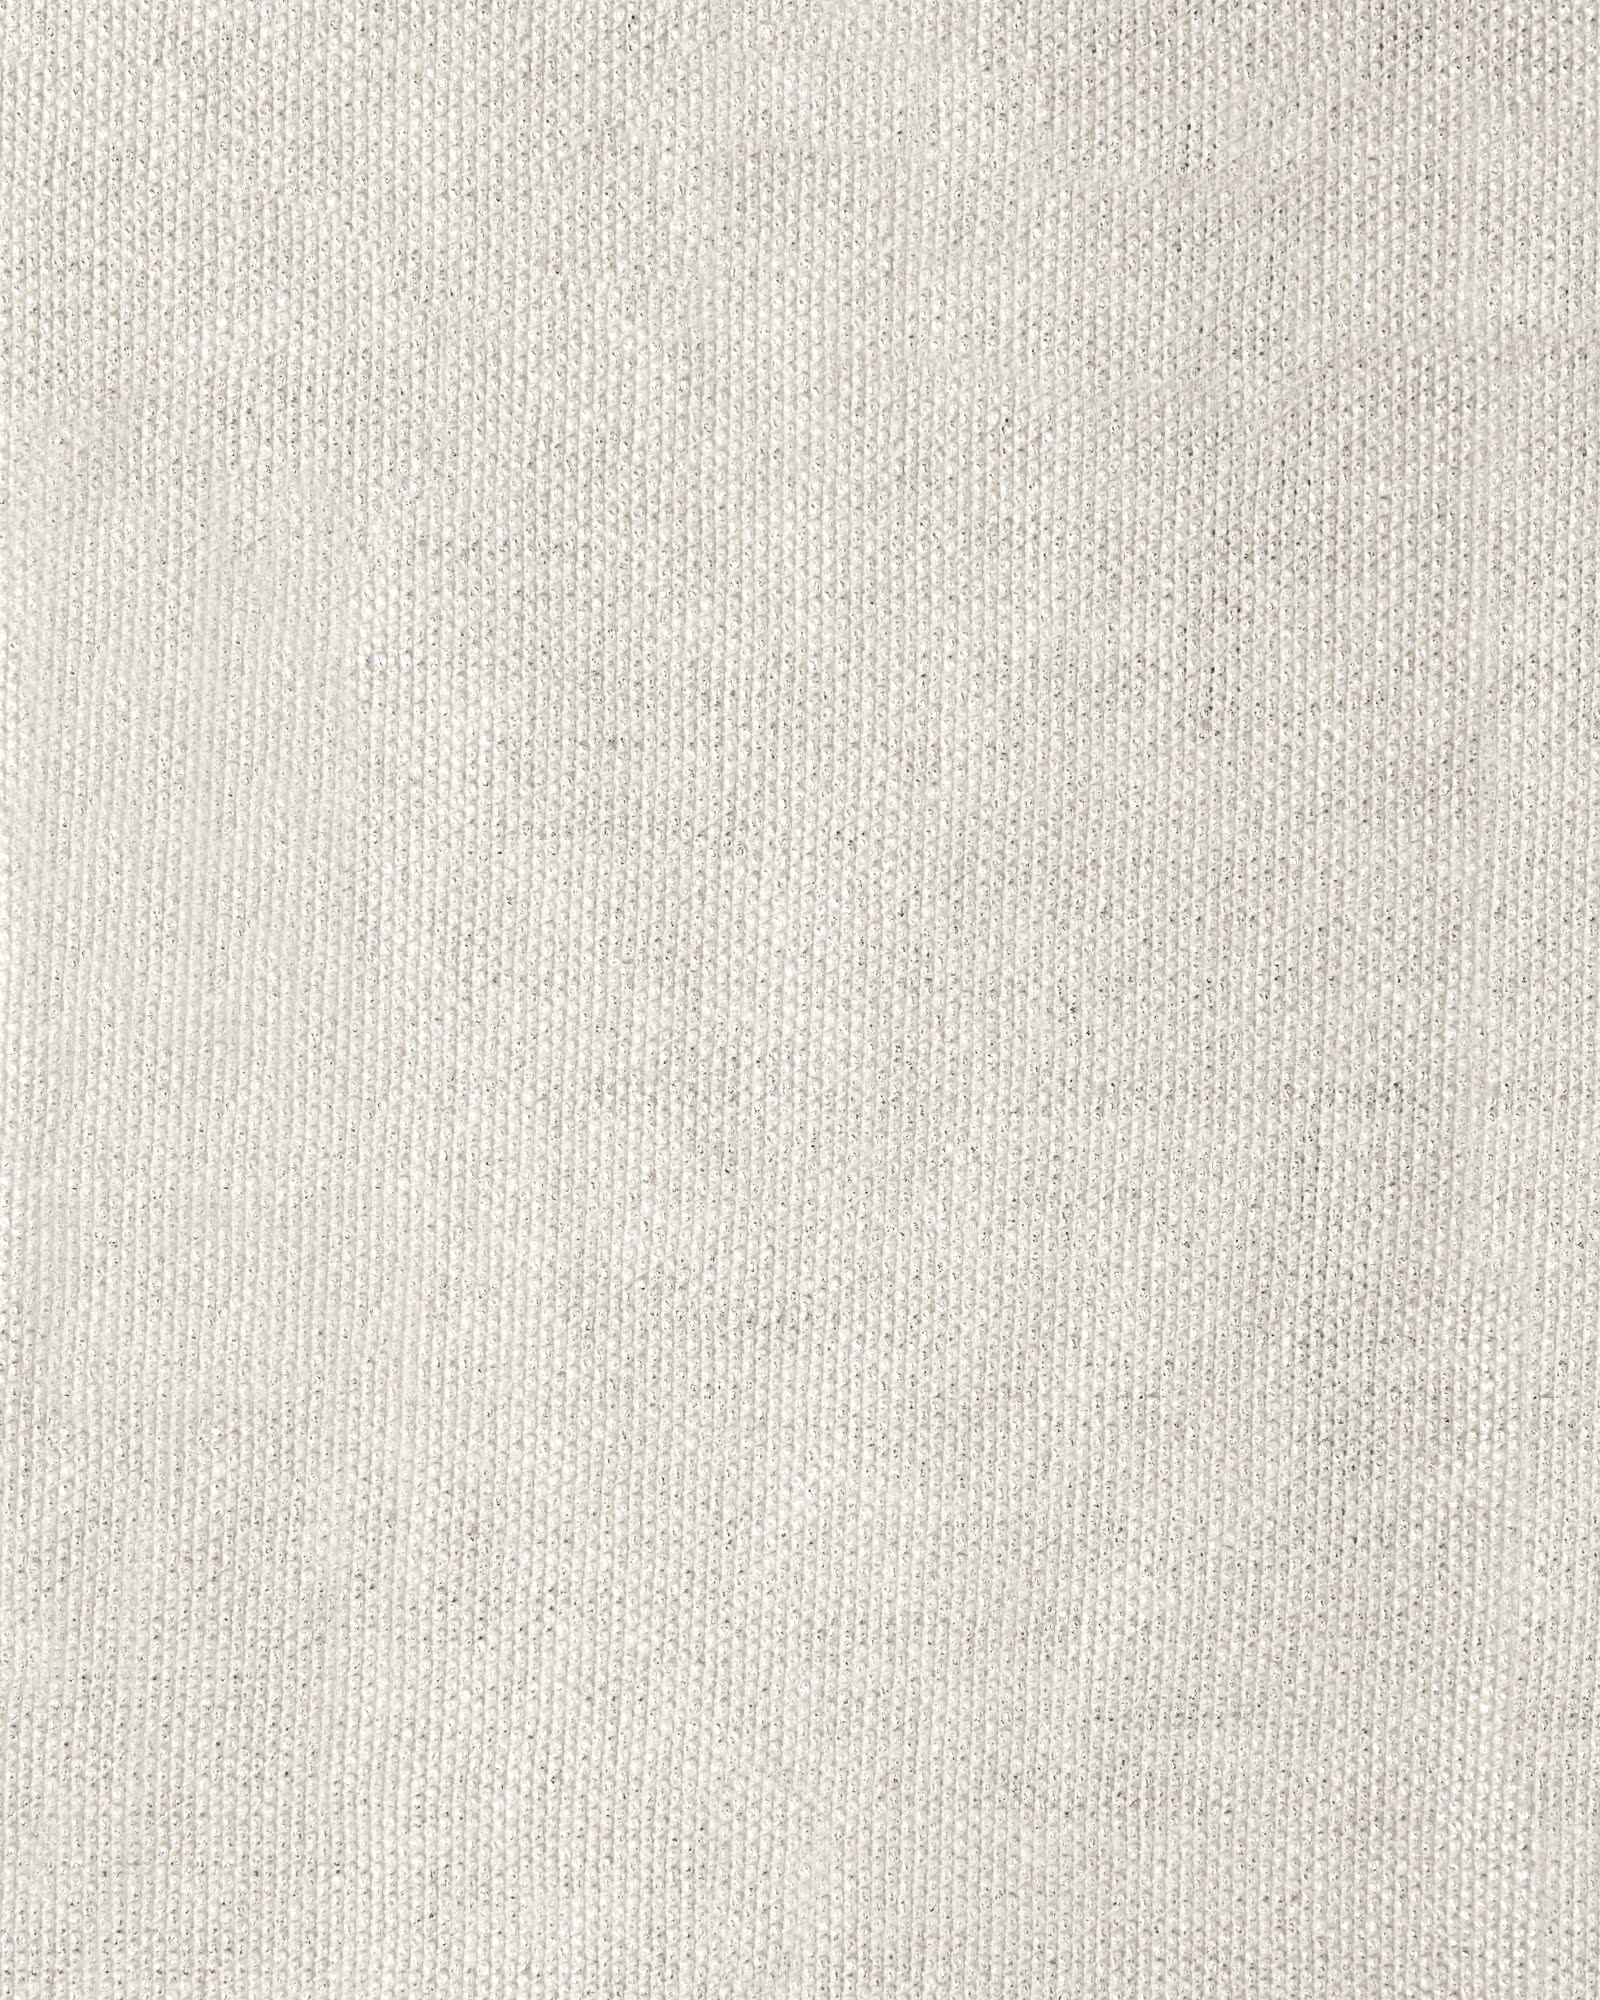 Fabric by the Yard – Metallic Linen Blend, Oatmeal